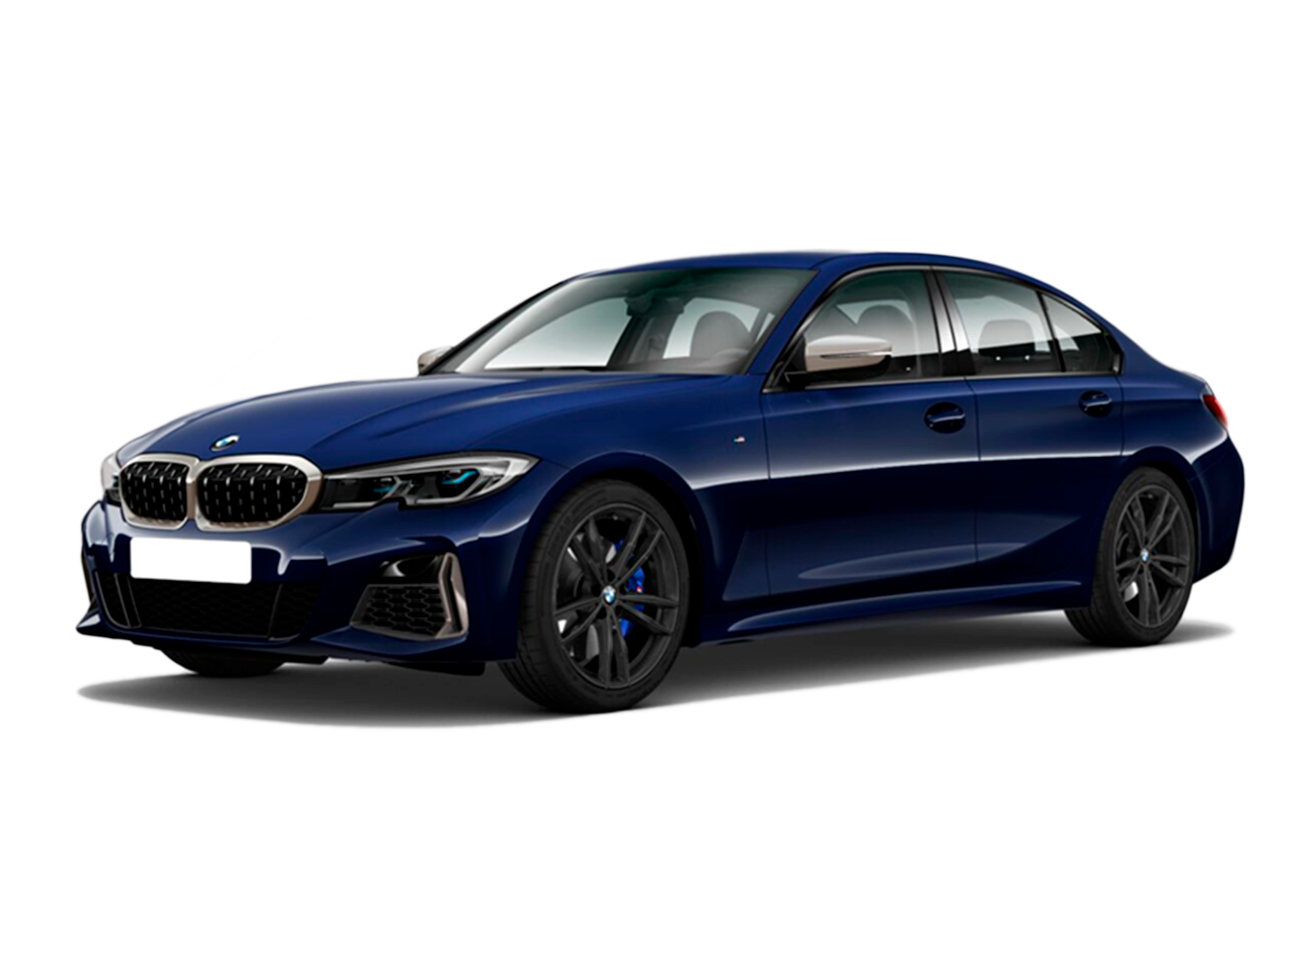 BMW - M 340I - 3.0 TWINPOWER GASOLINA FIRST EDITION XDRIVE STEPTRONIC